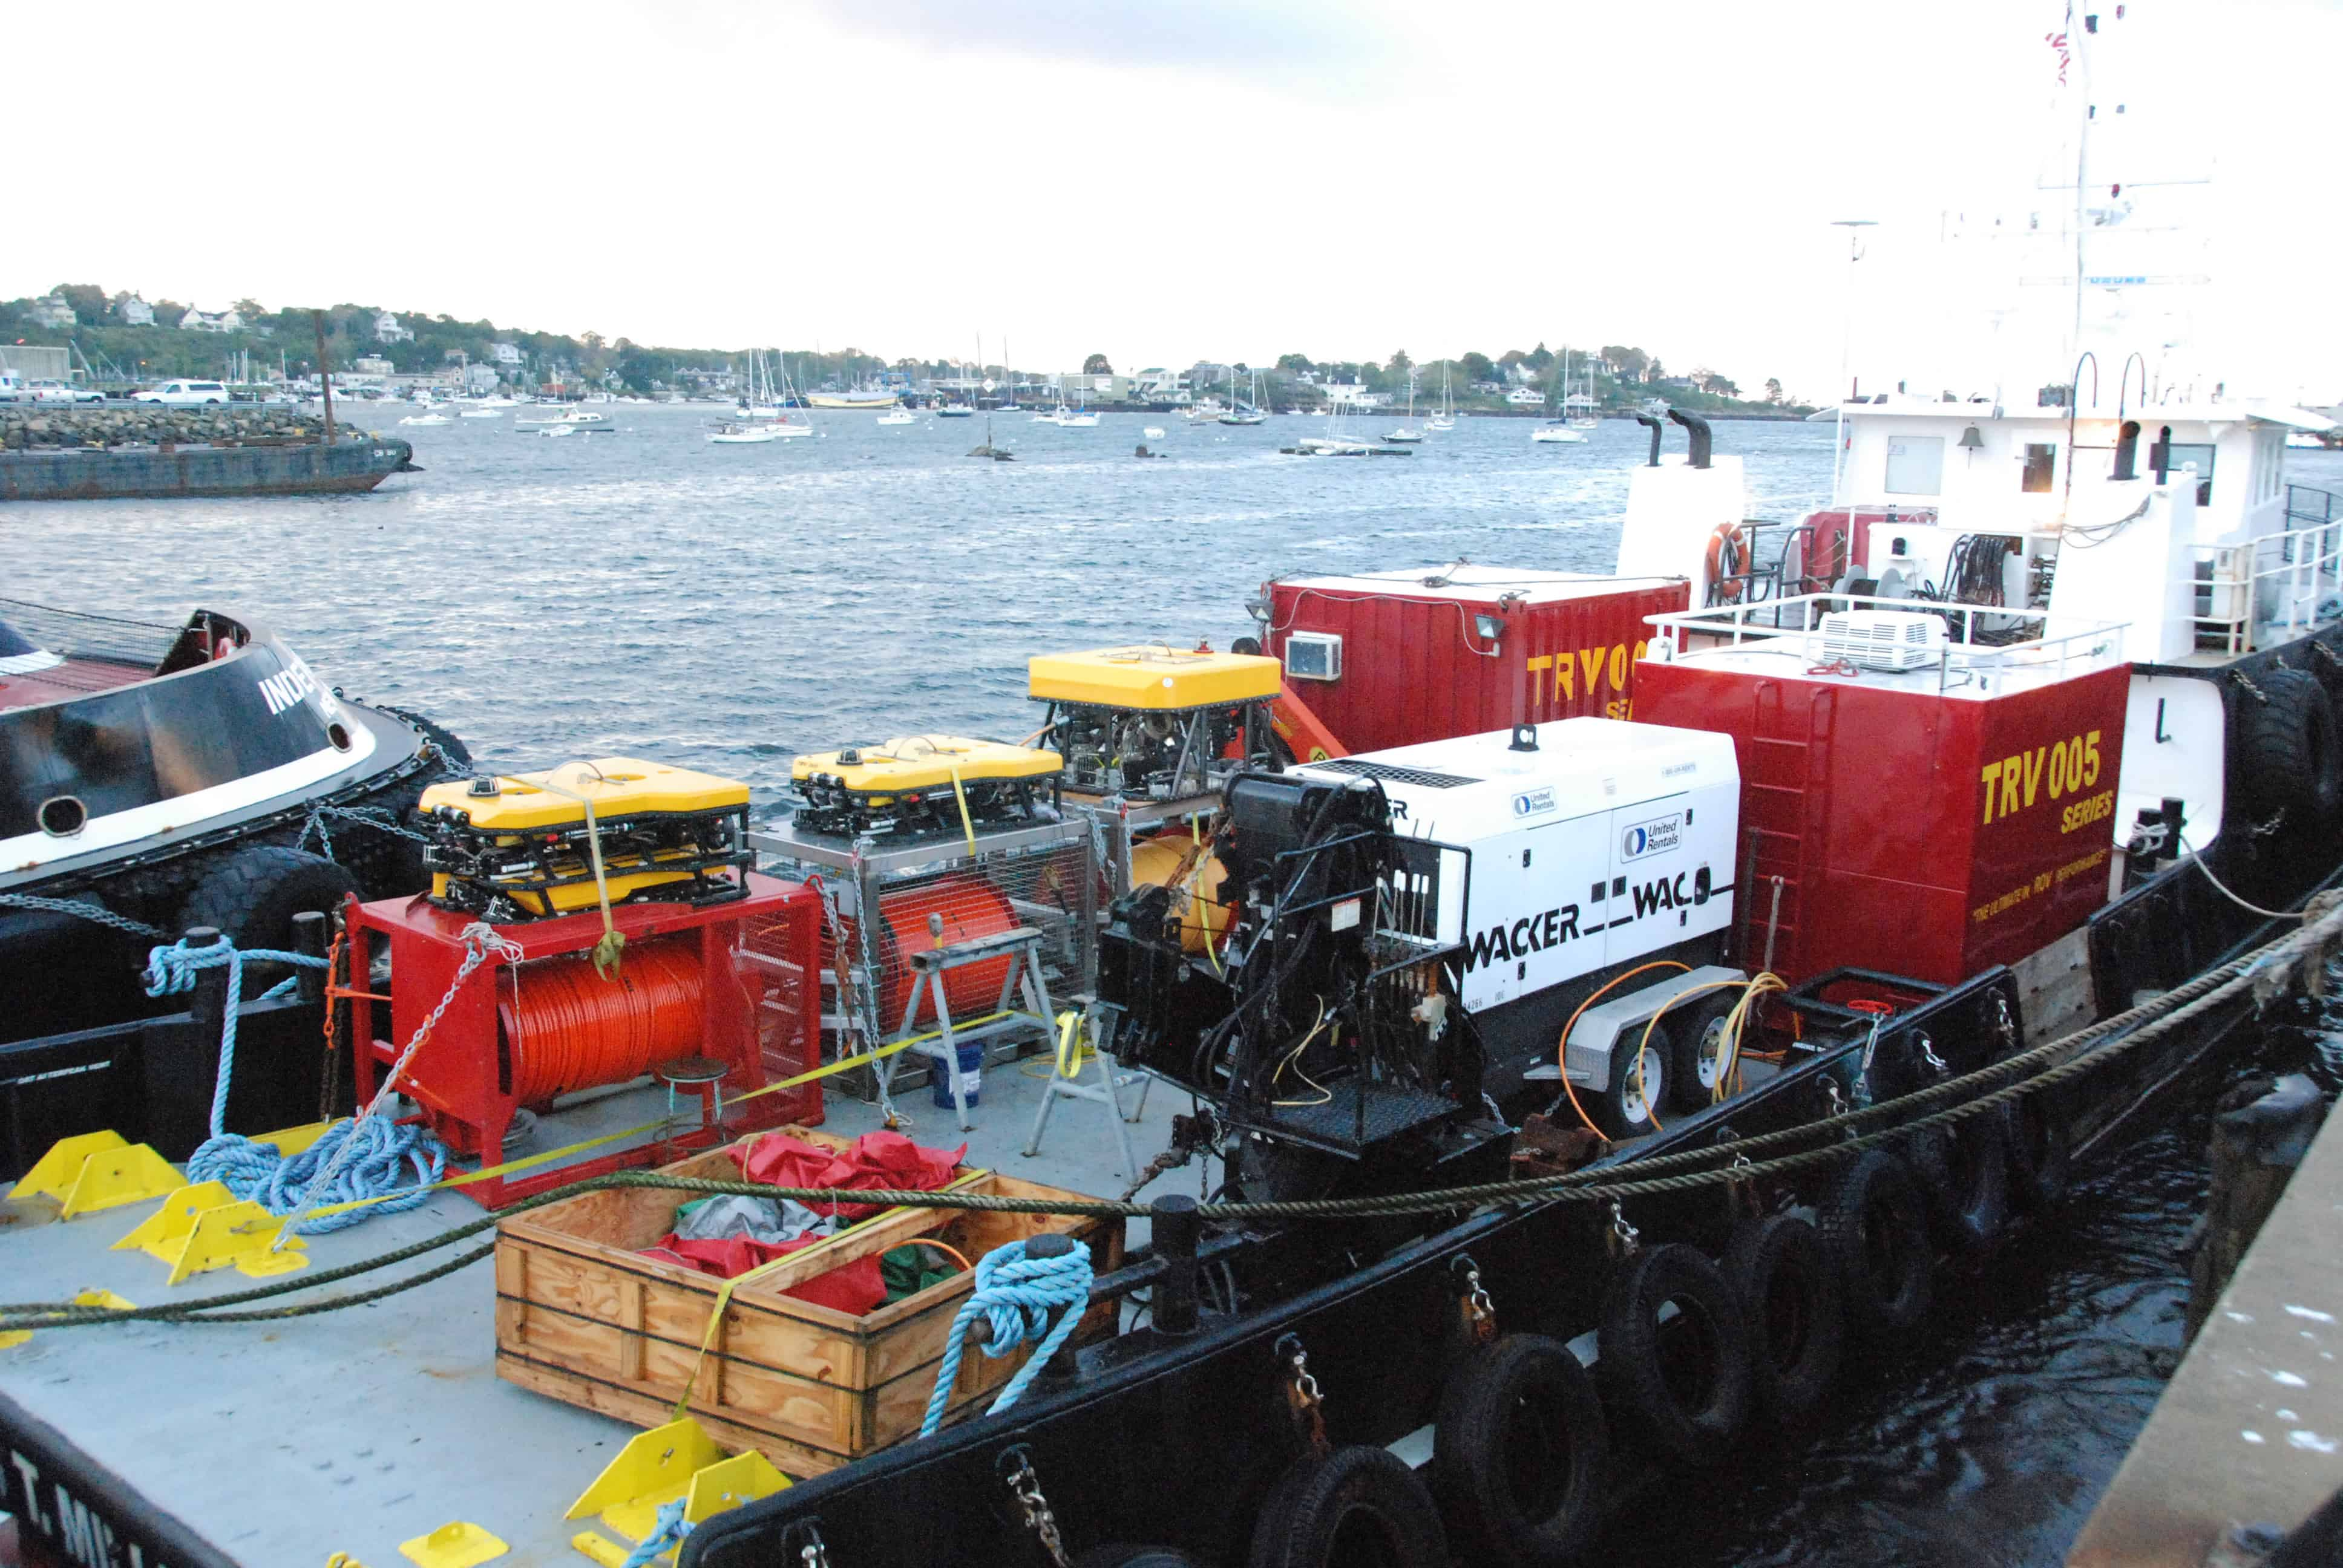 Offshore Wind Farm Vessels Support with Miller Marine Services